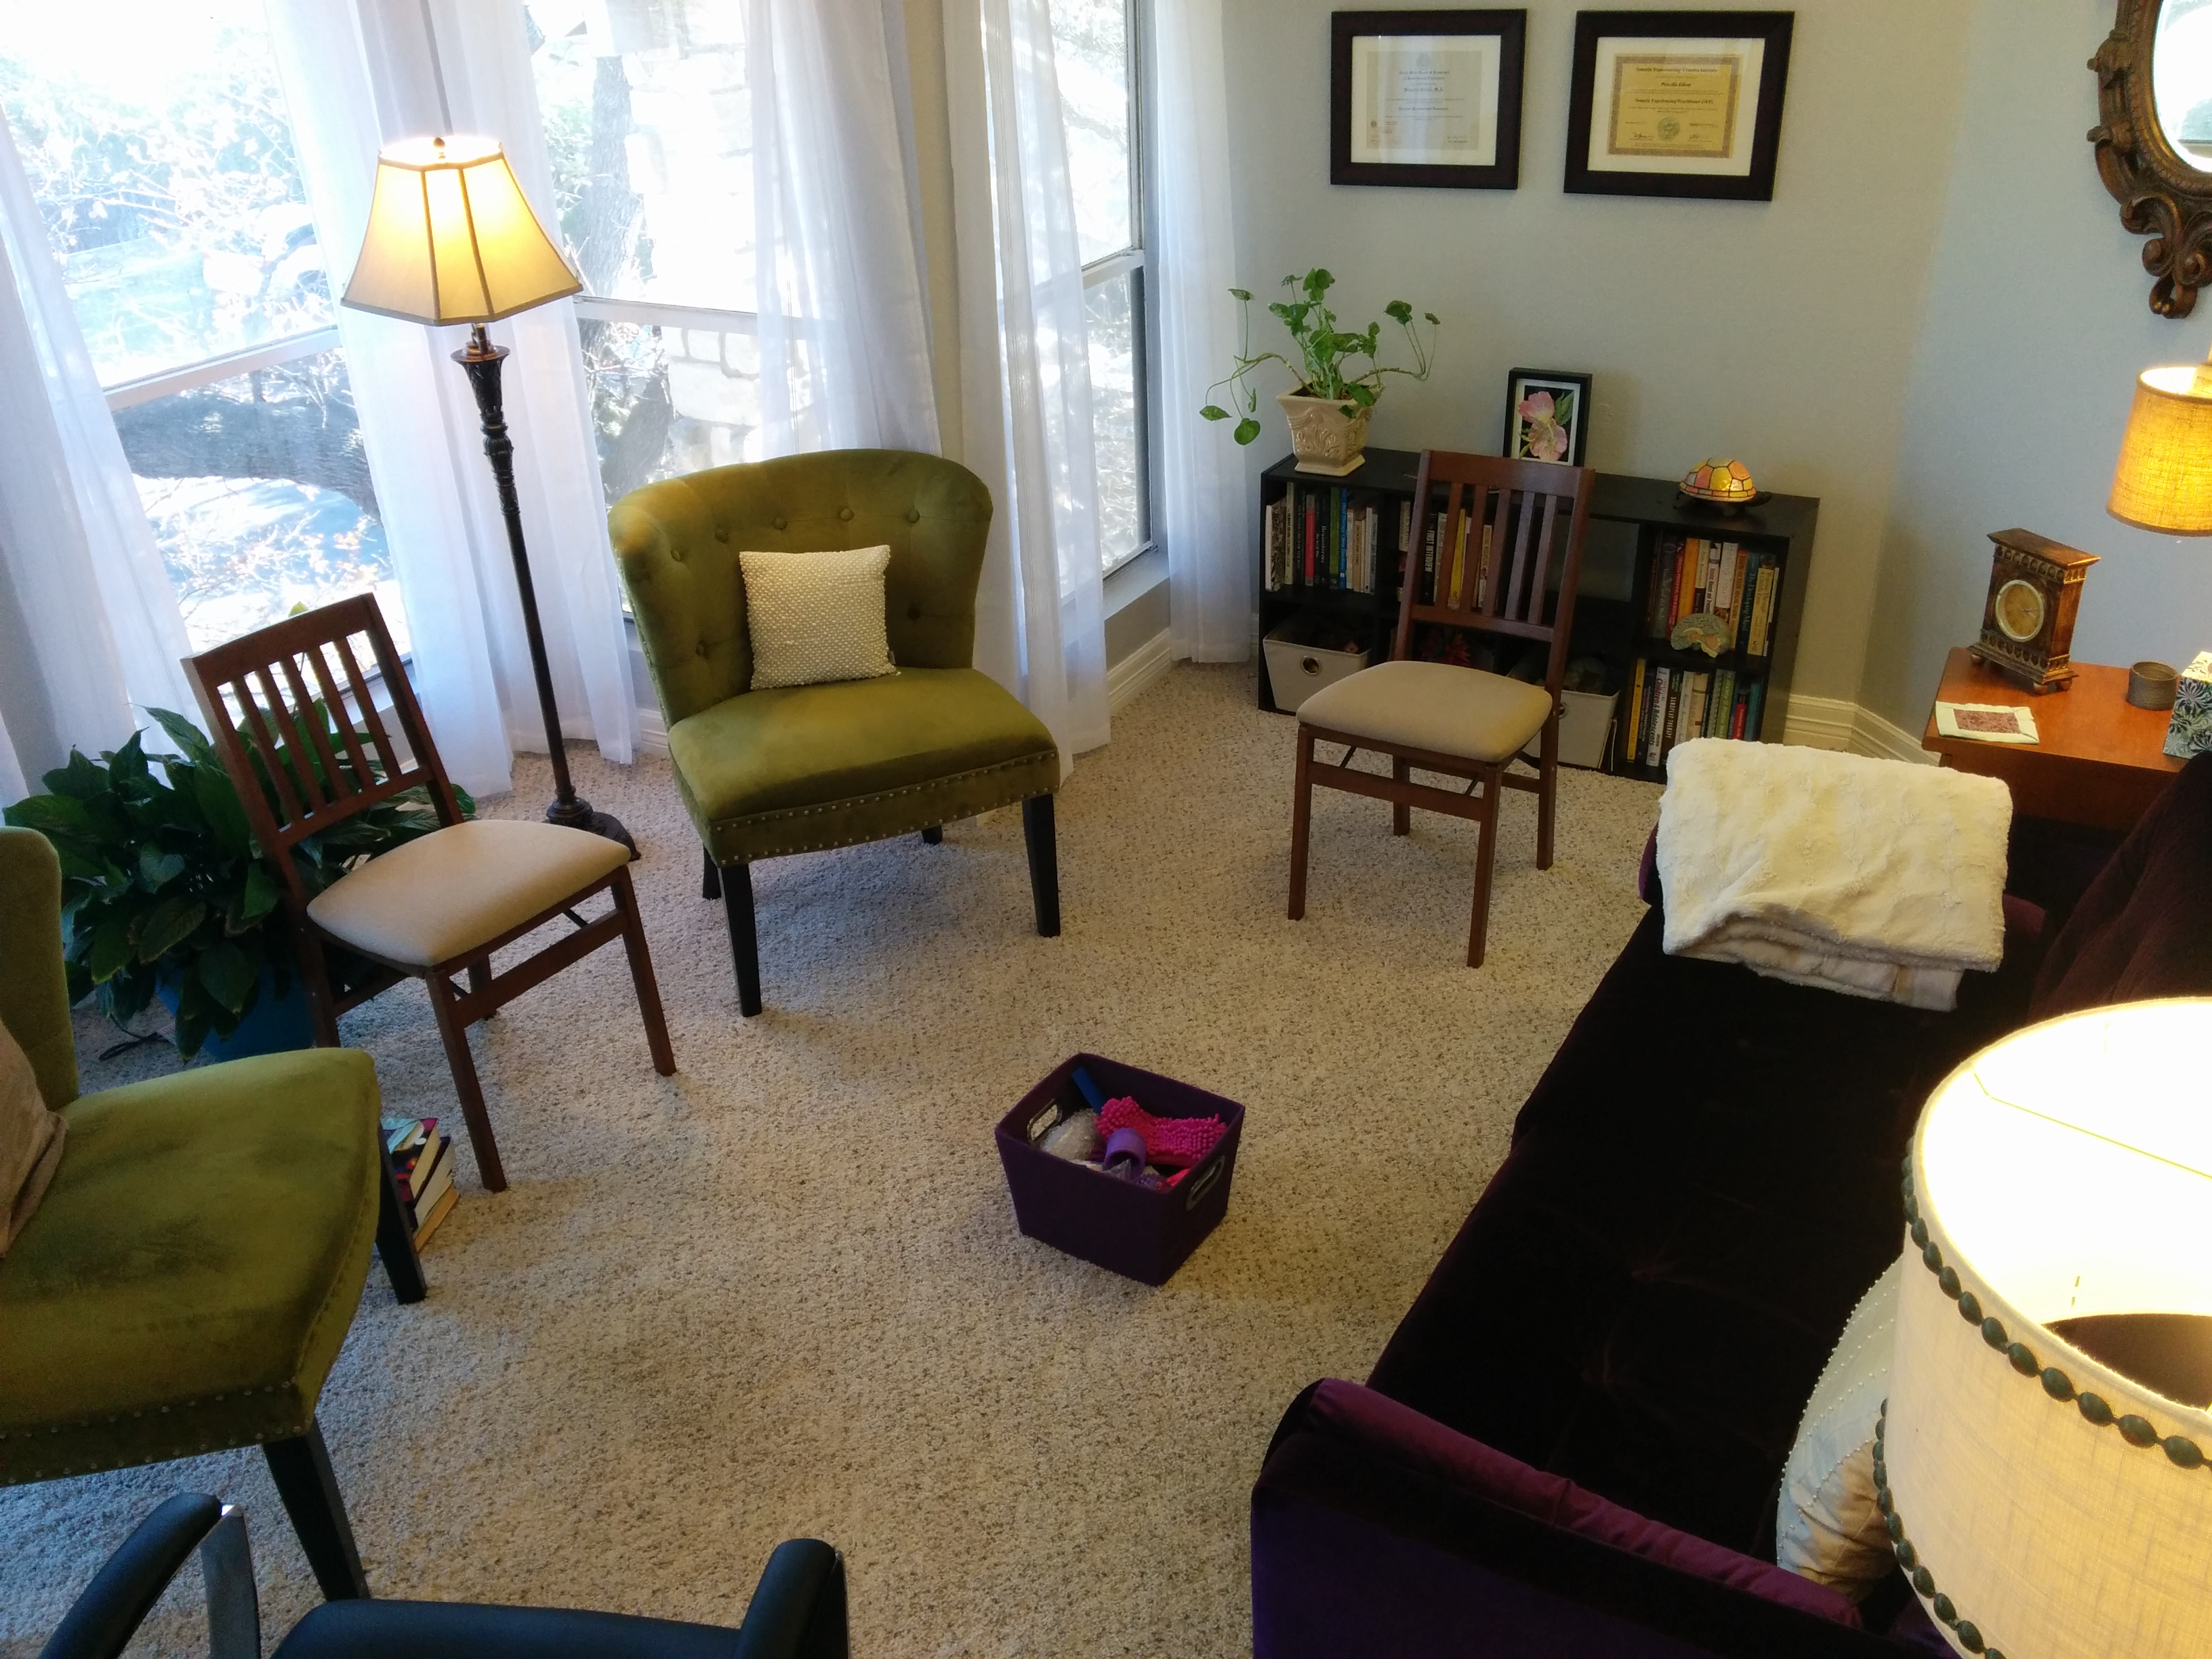 Group Room at Courage Counseling by Priscilla Elliott